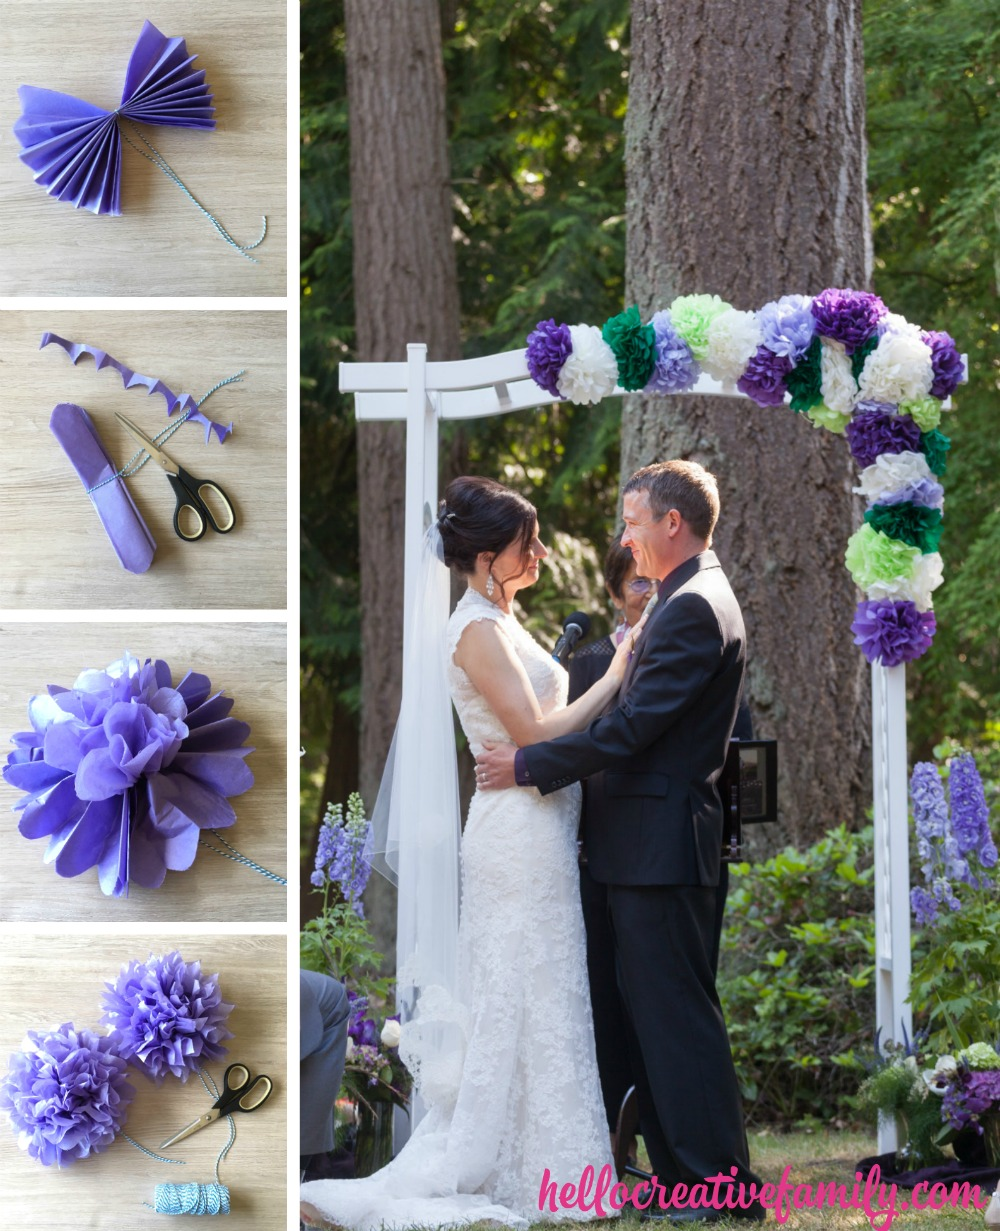 Looking for a budget party decoration idea? Learn how to make 8 DIY mini tissue paper flowers for $1.00! With step by step photos and instructions this post is a